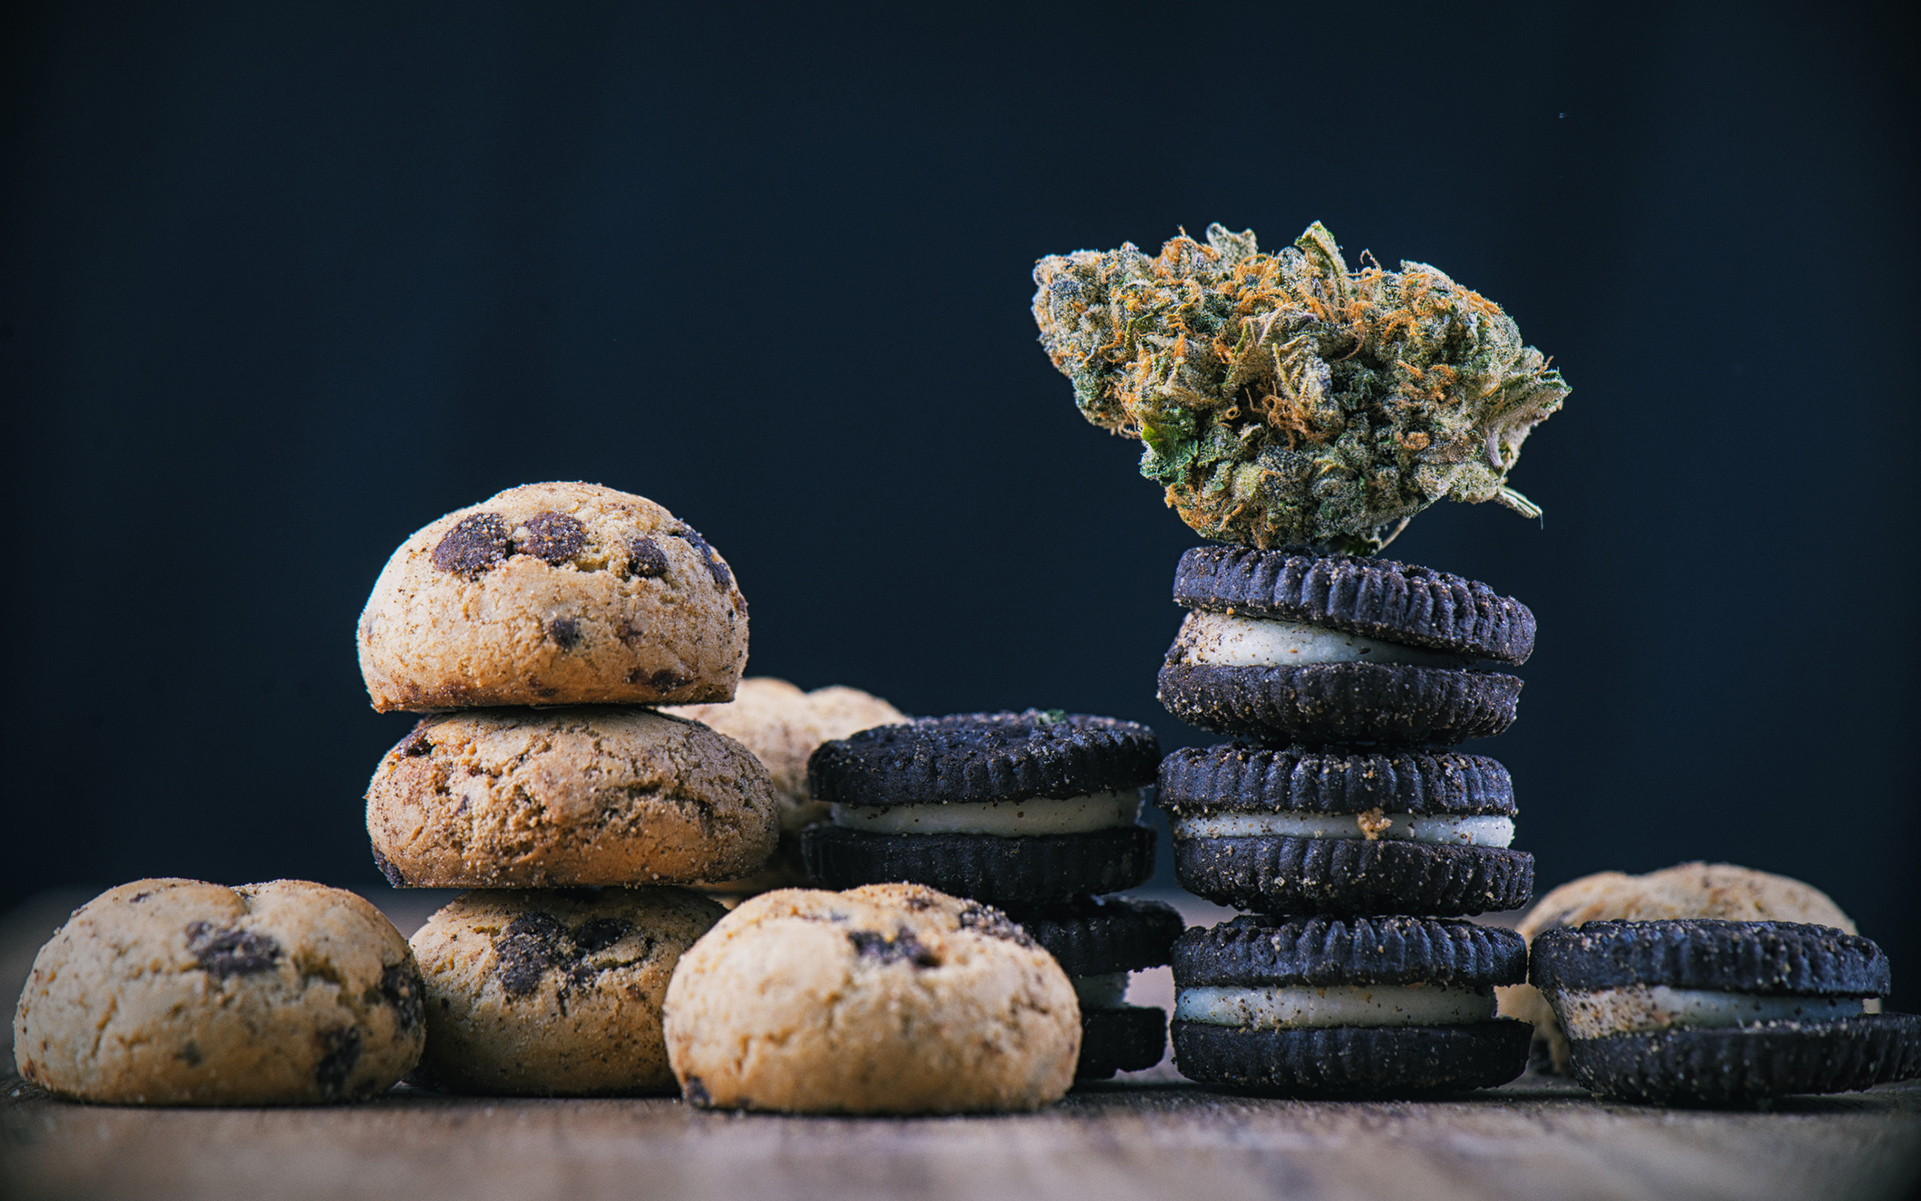 5 Tips to Dose & Enjoy High-THC Cannabis Edibles | Leafly